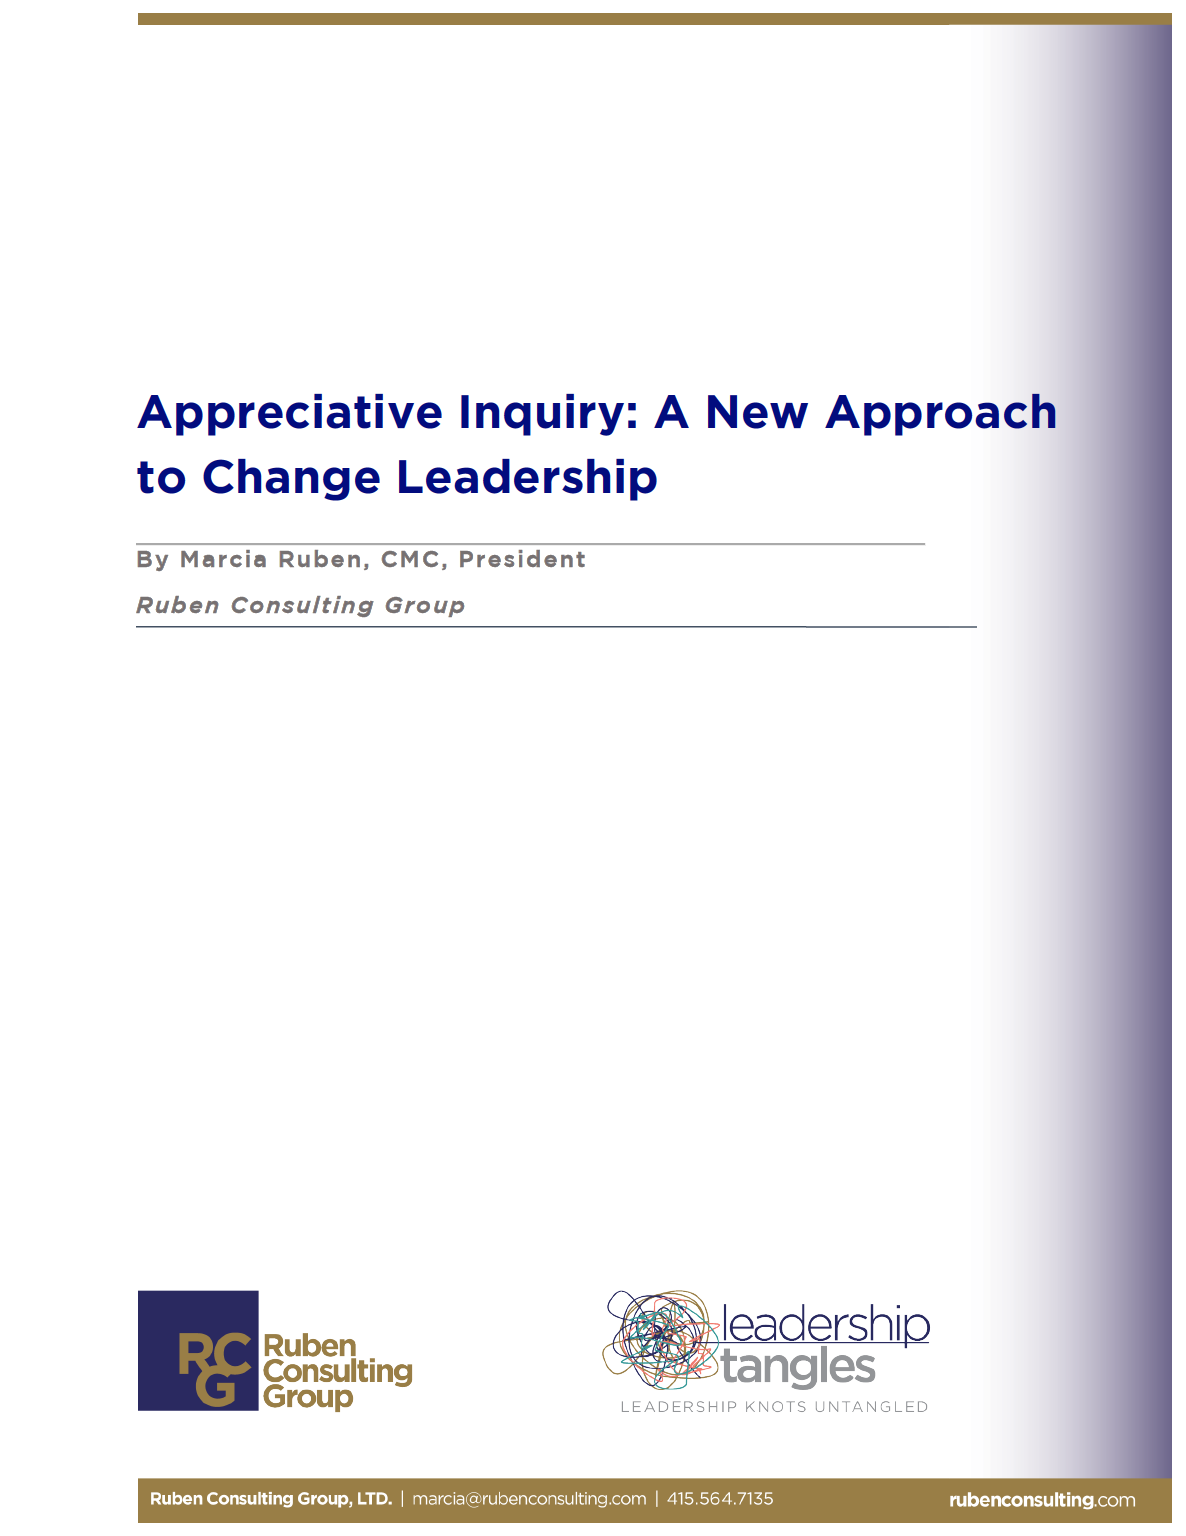 Appreciative Inquiry: A New Approach to Change Leadership